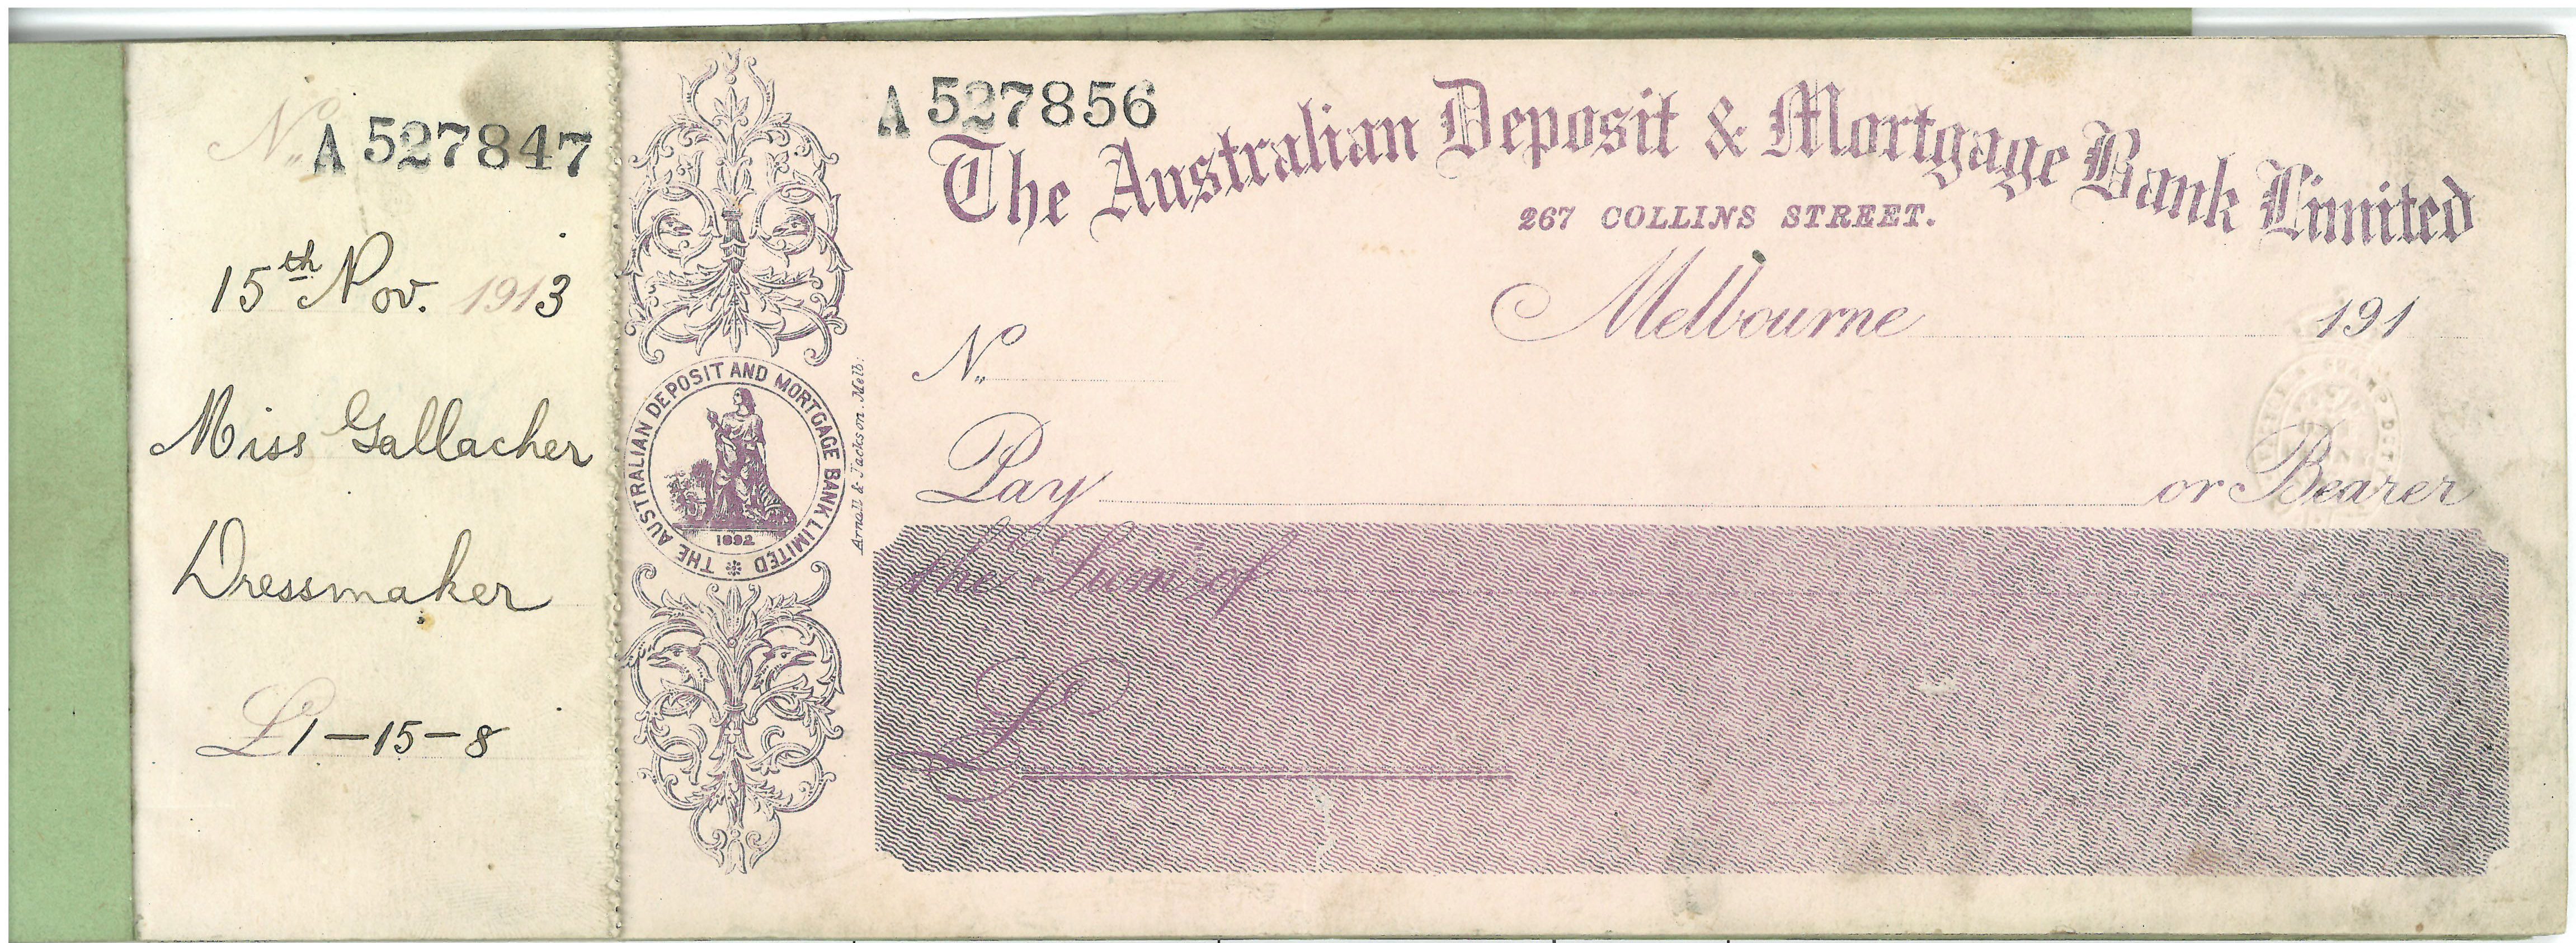 A cheque book from 1913